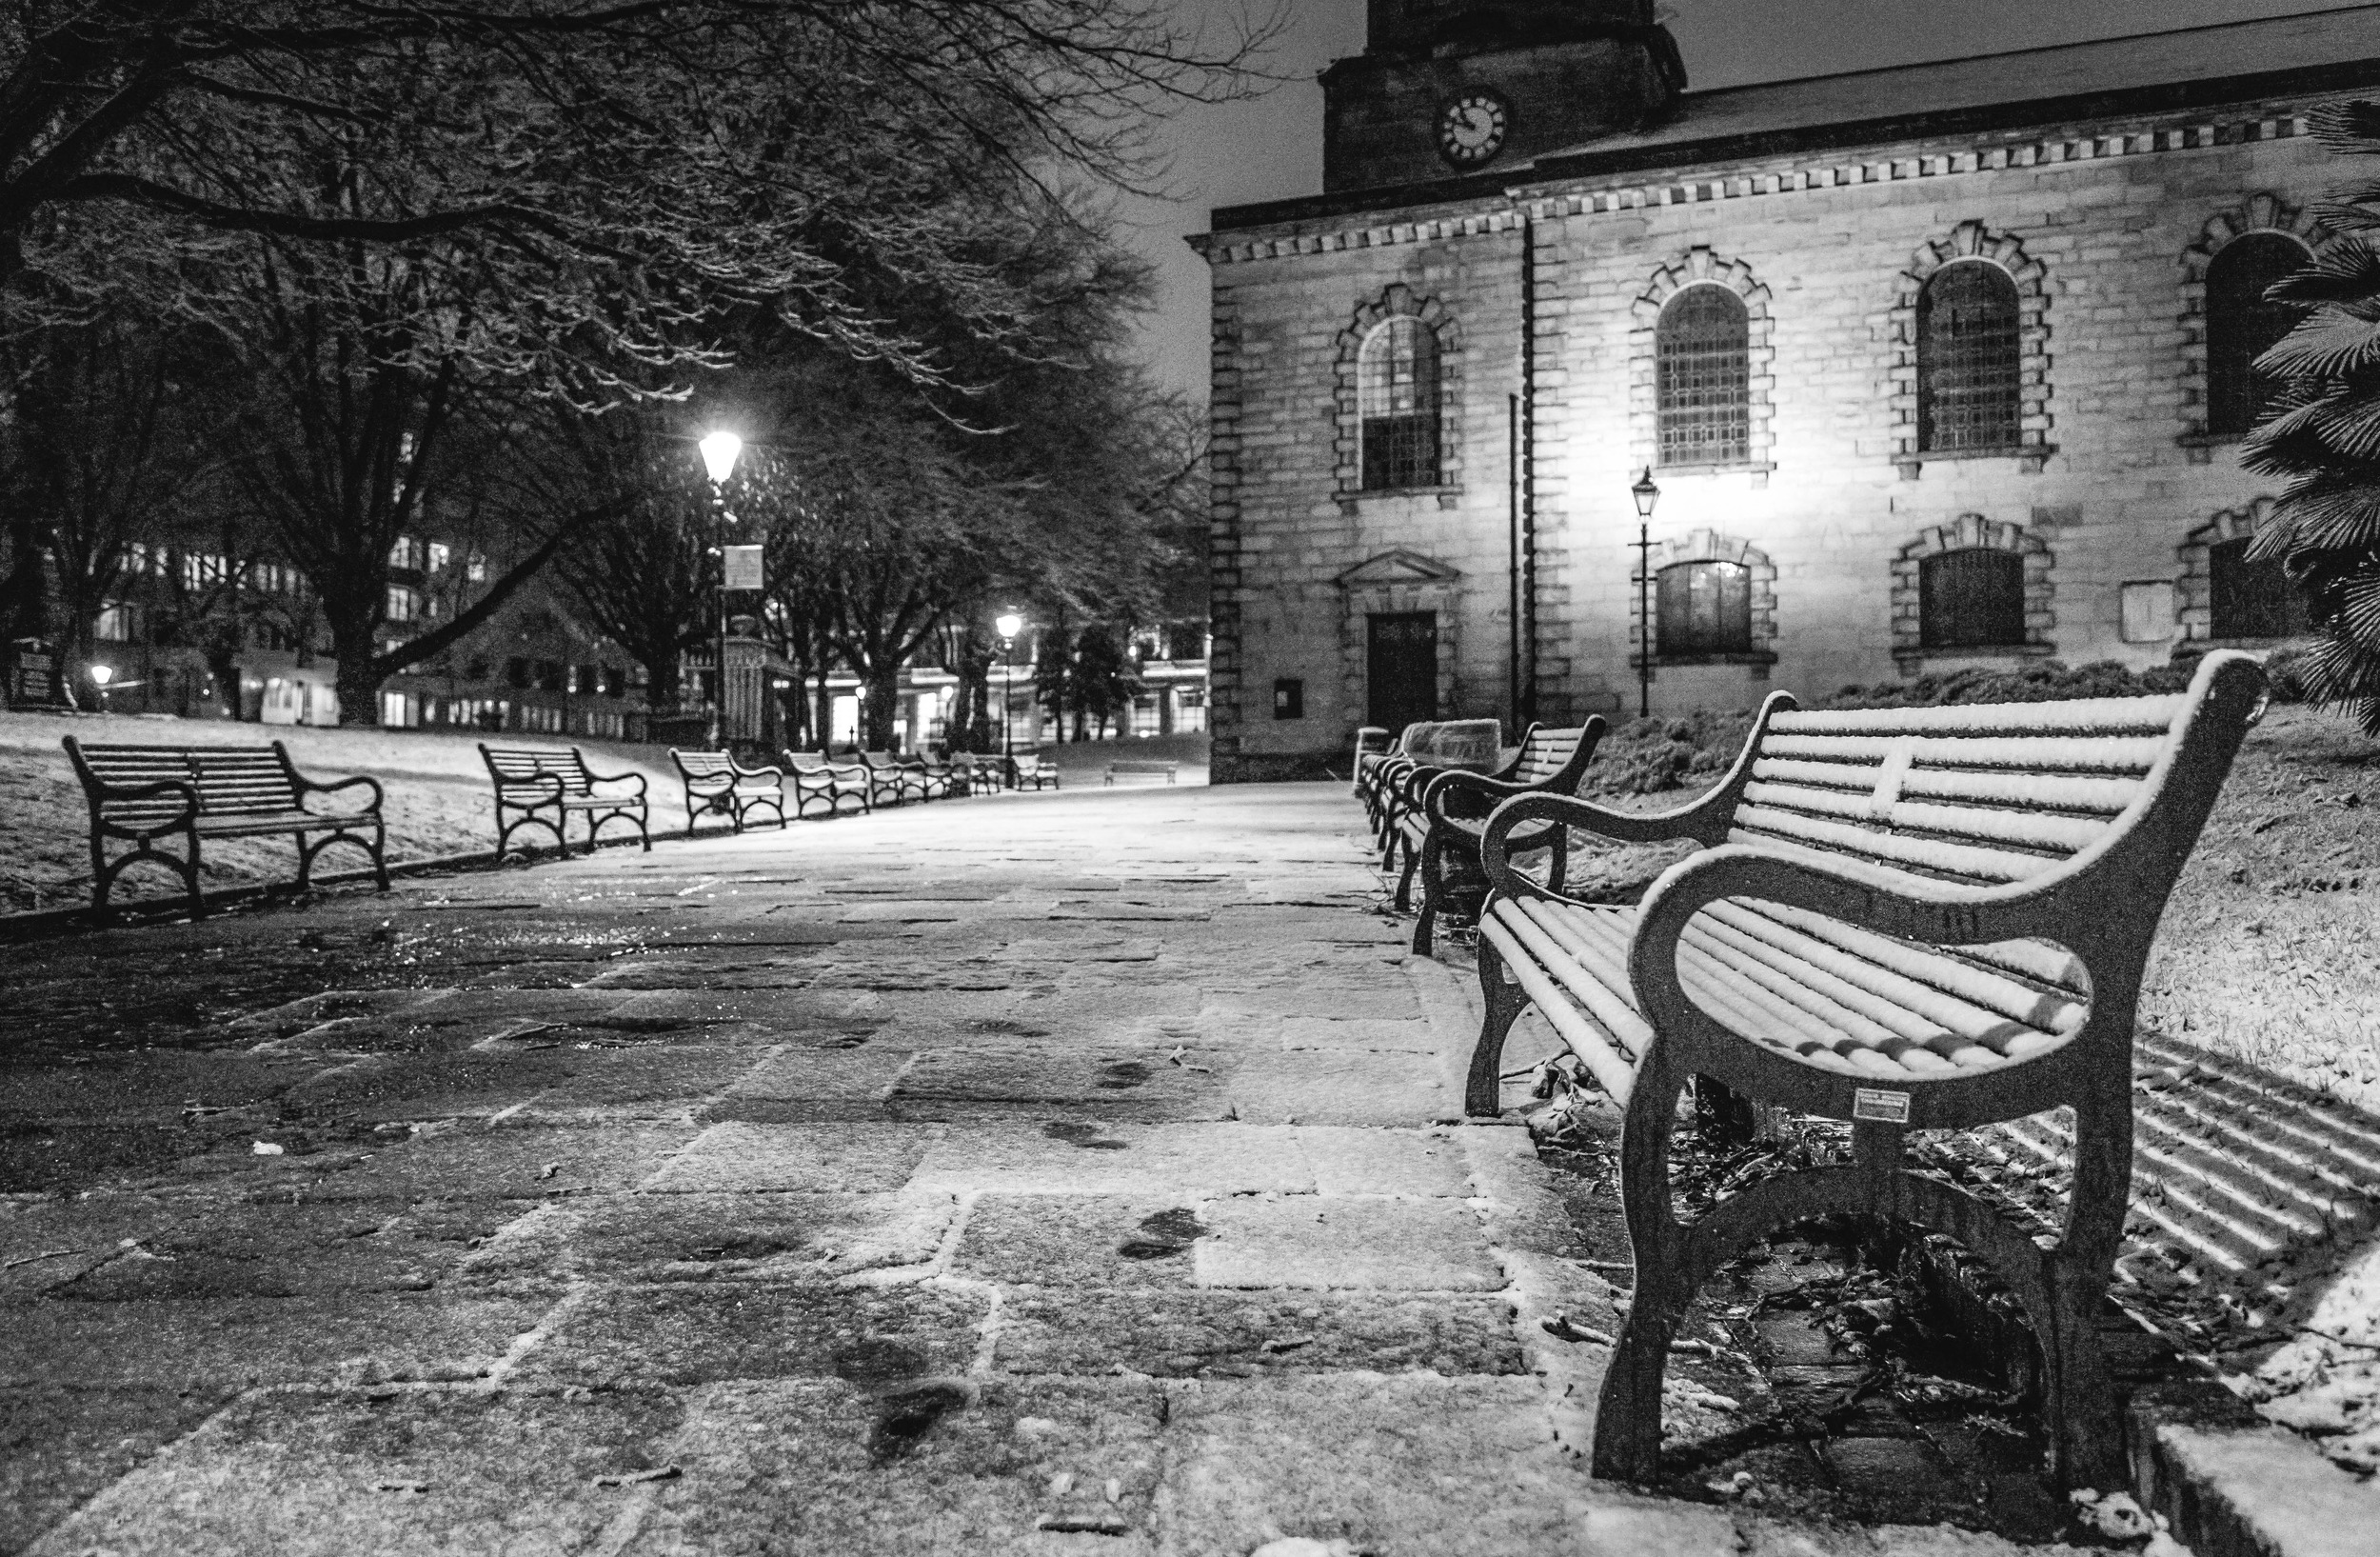 Cold start to the year - Birmingham Snow